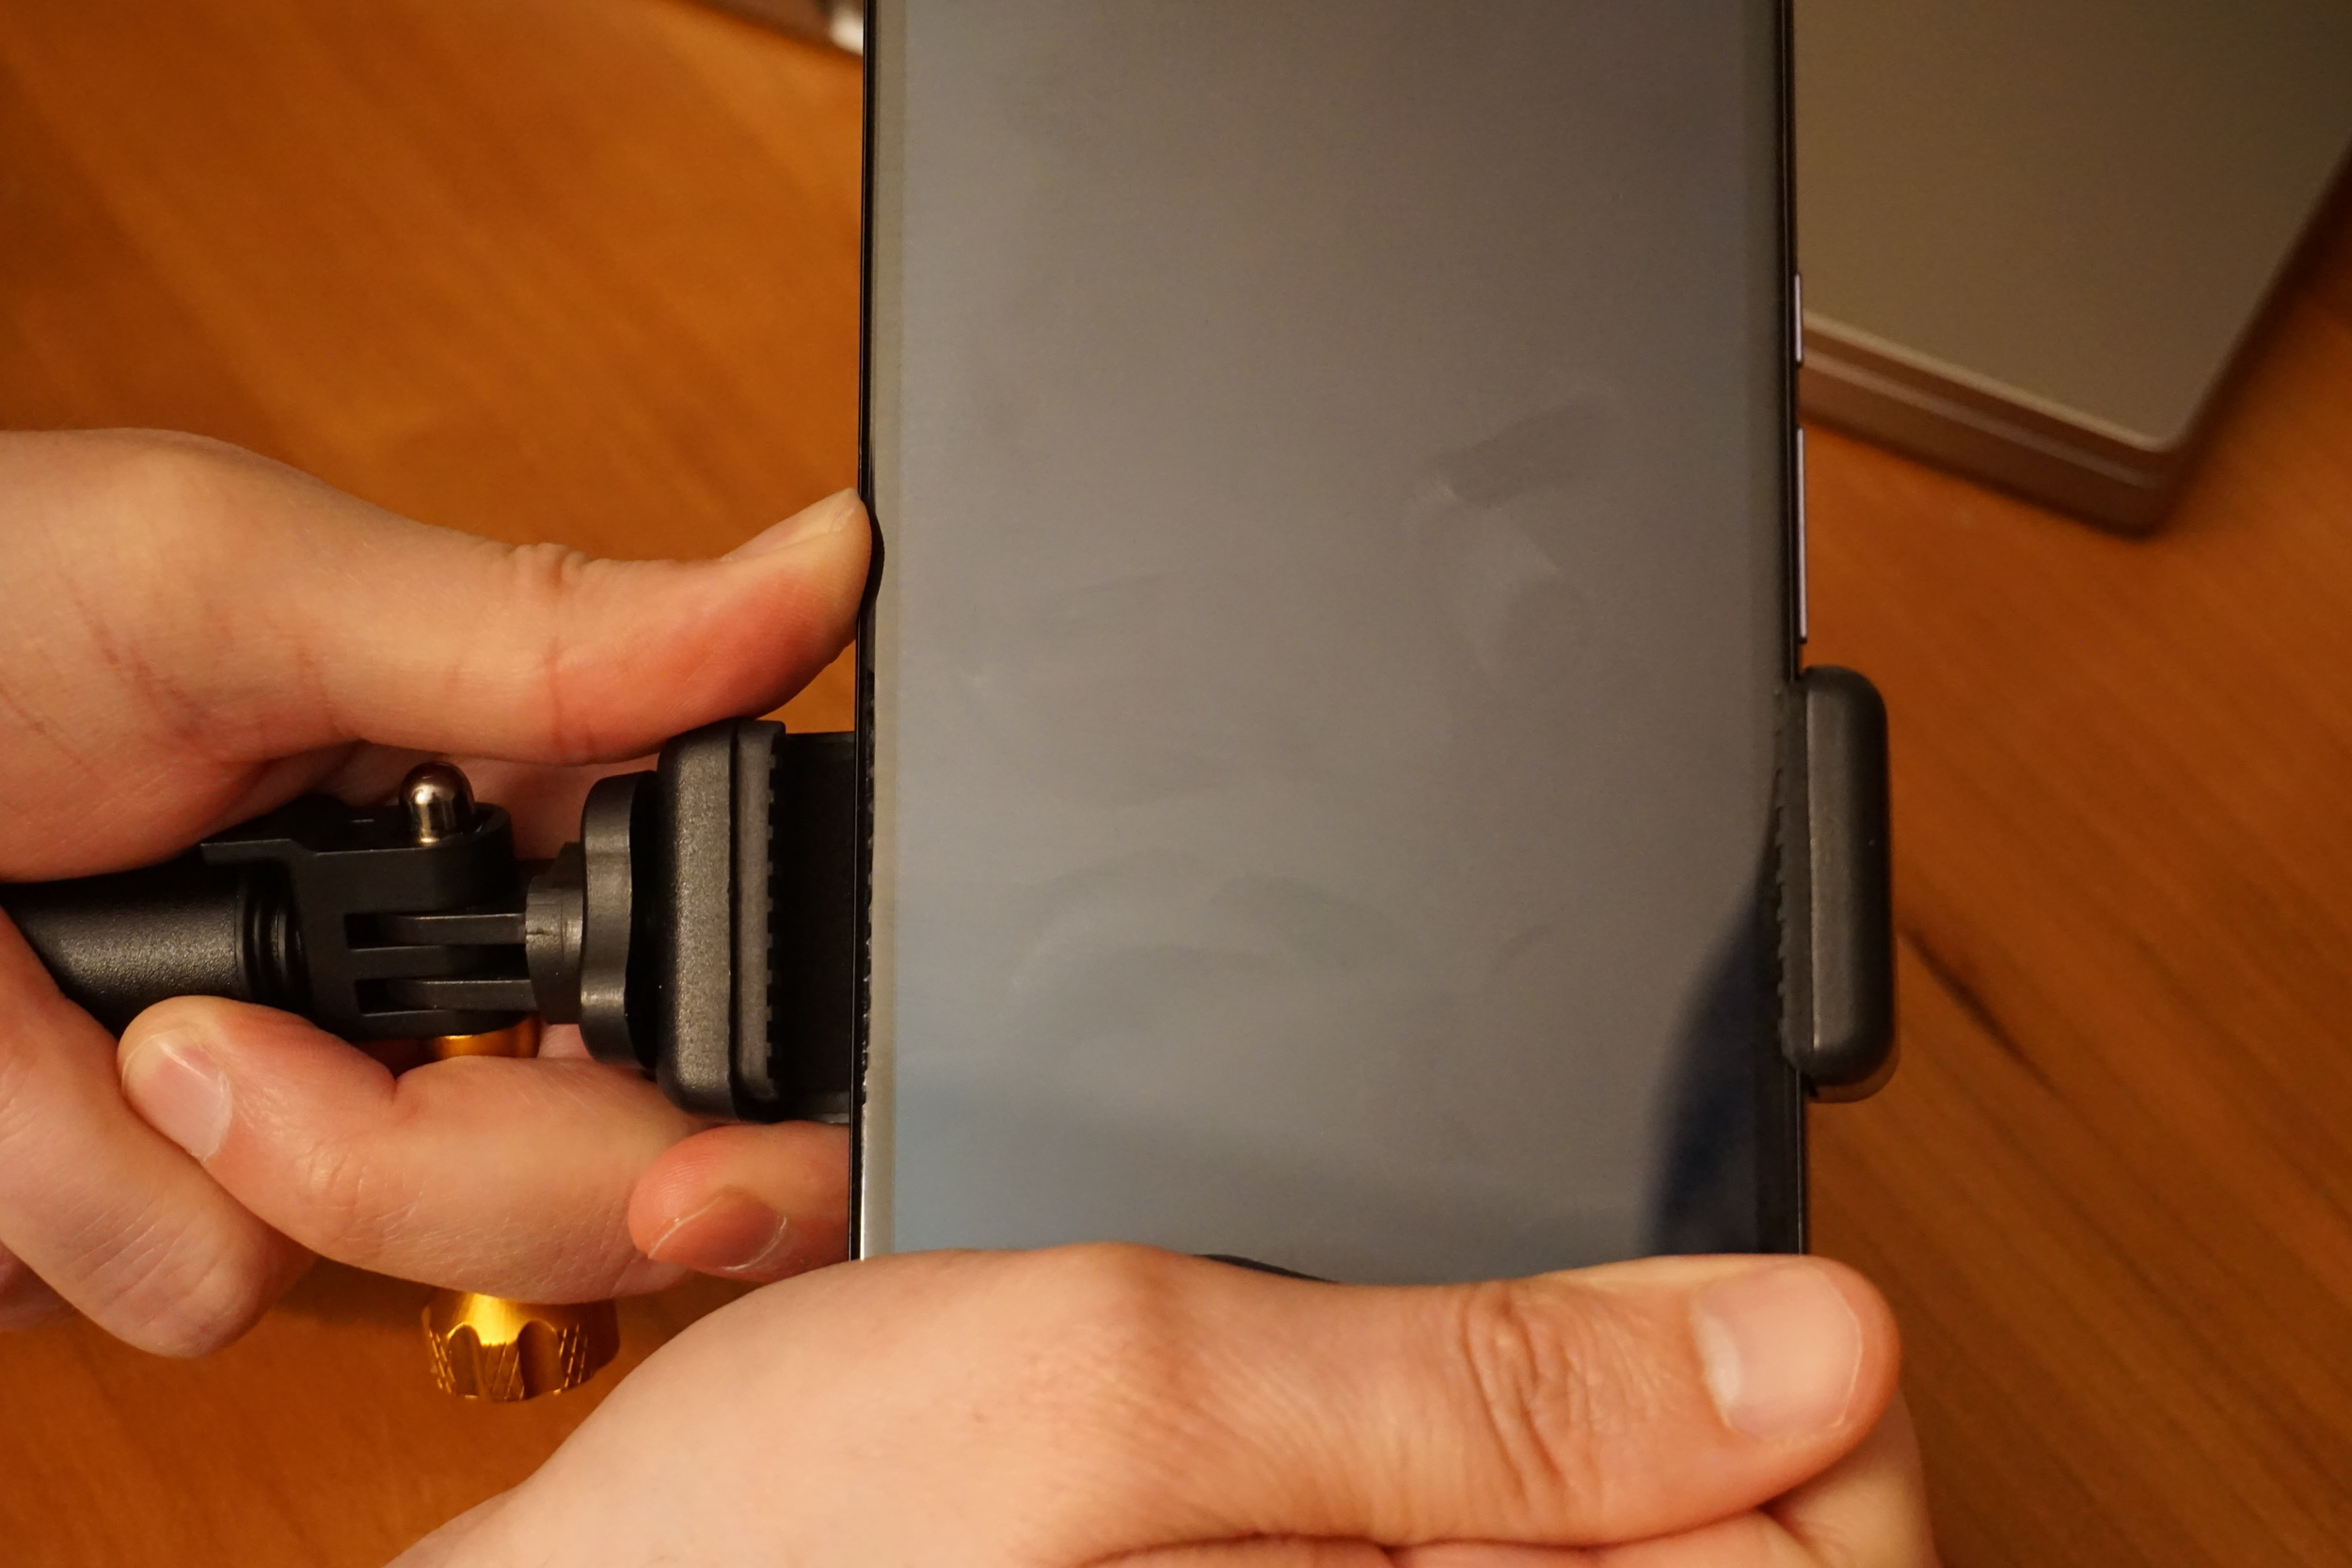 Larger phones, like the Nexus 6 shown, even have room to spare with the XShot Sport Camera Extender Pole